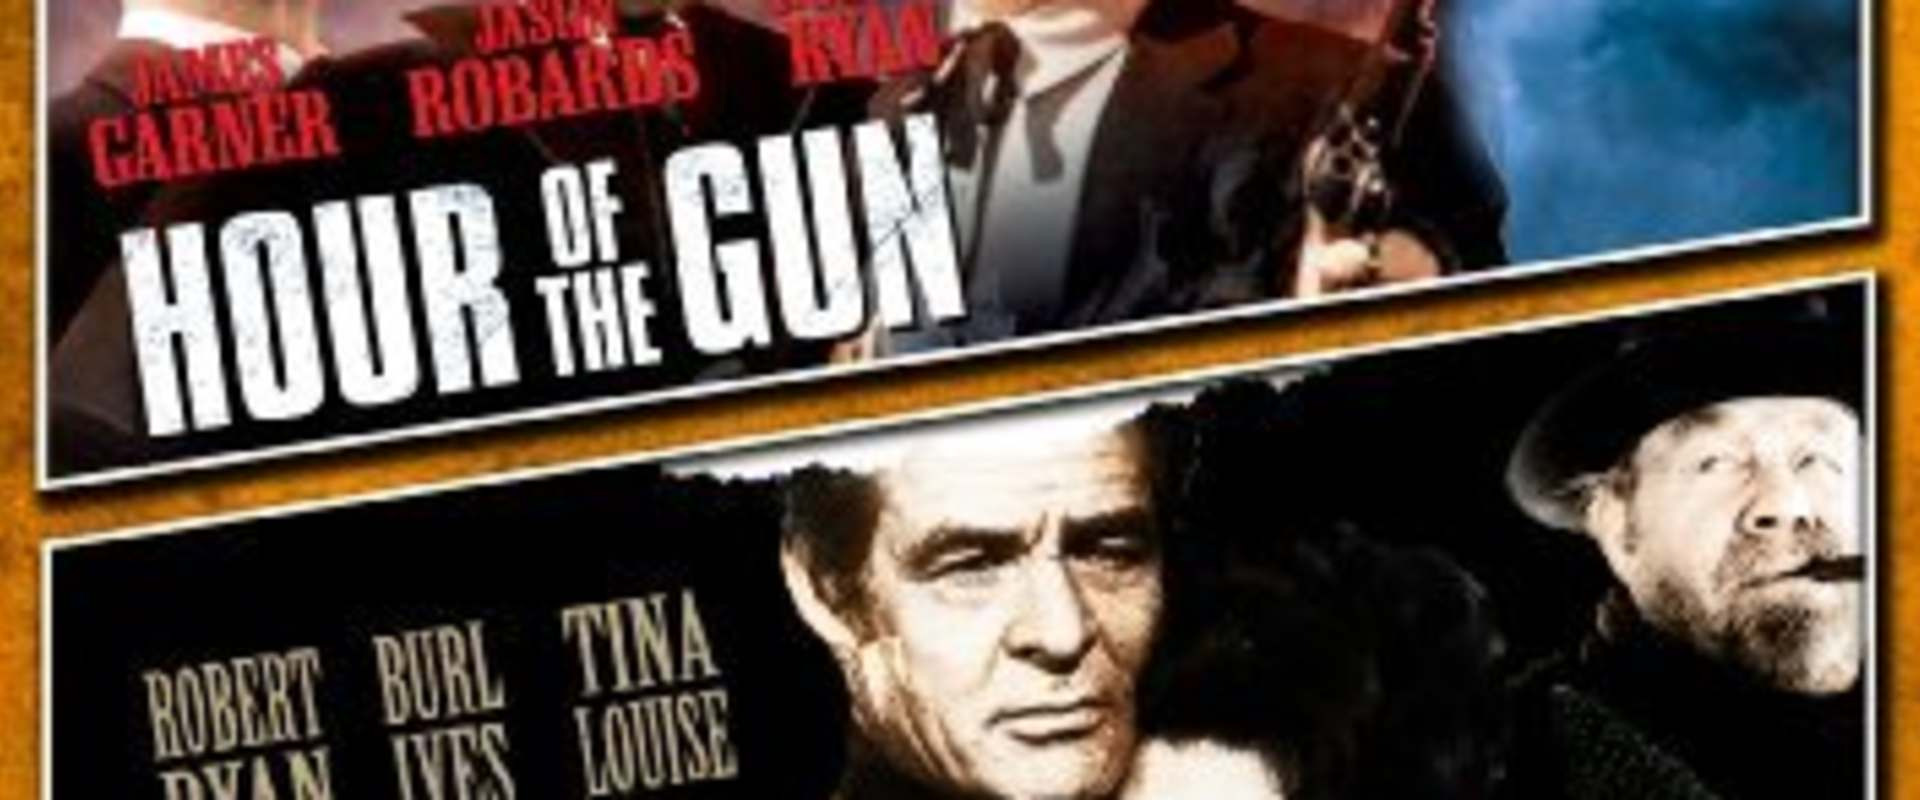 Hour of the Gun background 2